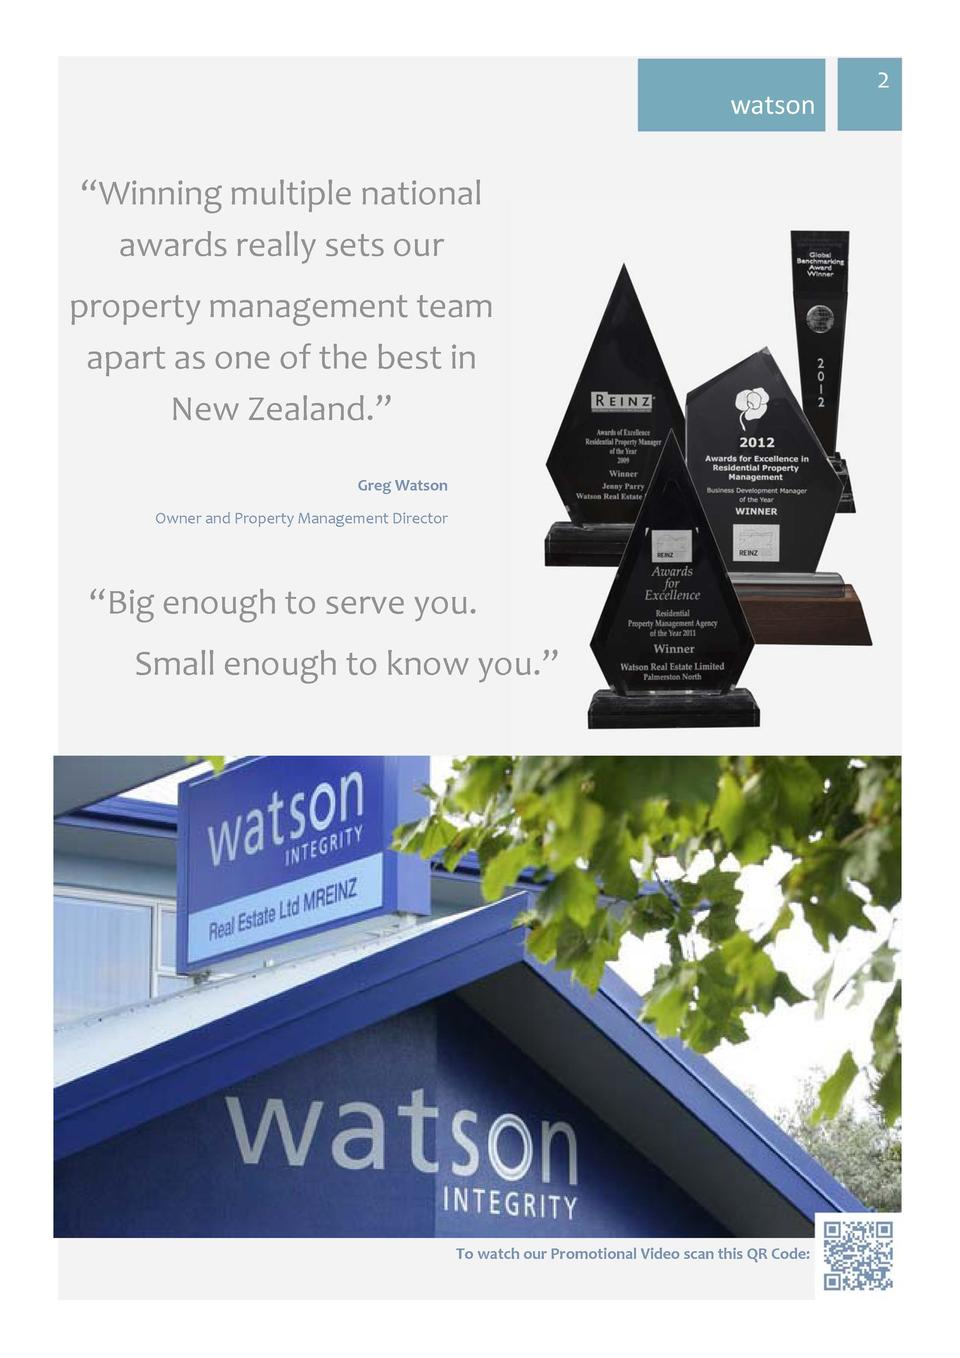 watson     Winning multiple national awards really sets our property management team apart as one of the best in New Z...